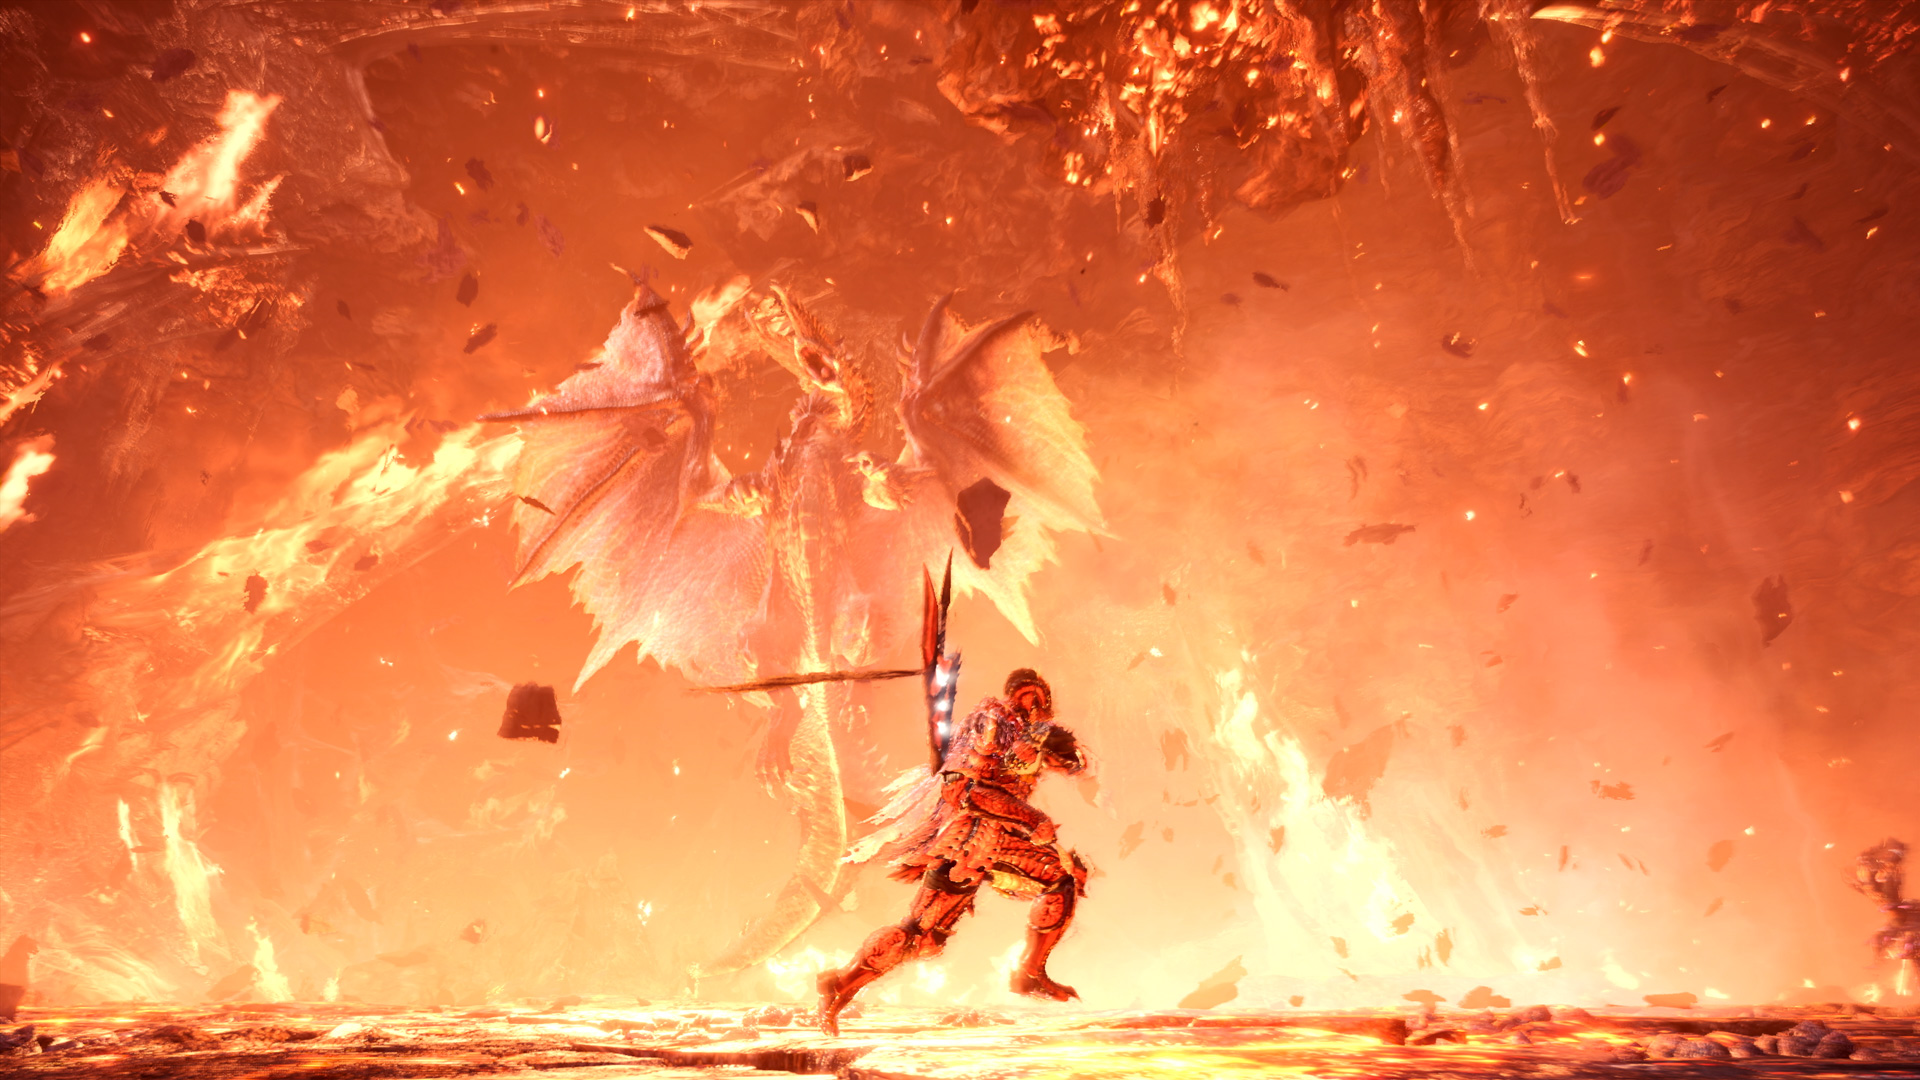 Alatreon Brings A Storm Of Elements To Monster Hunter World Iceborne July 9 Playstation Blog